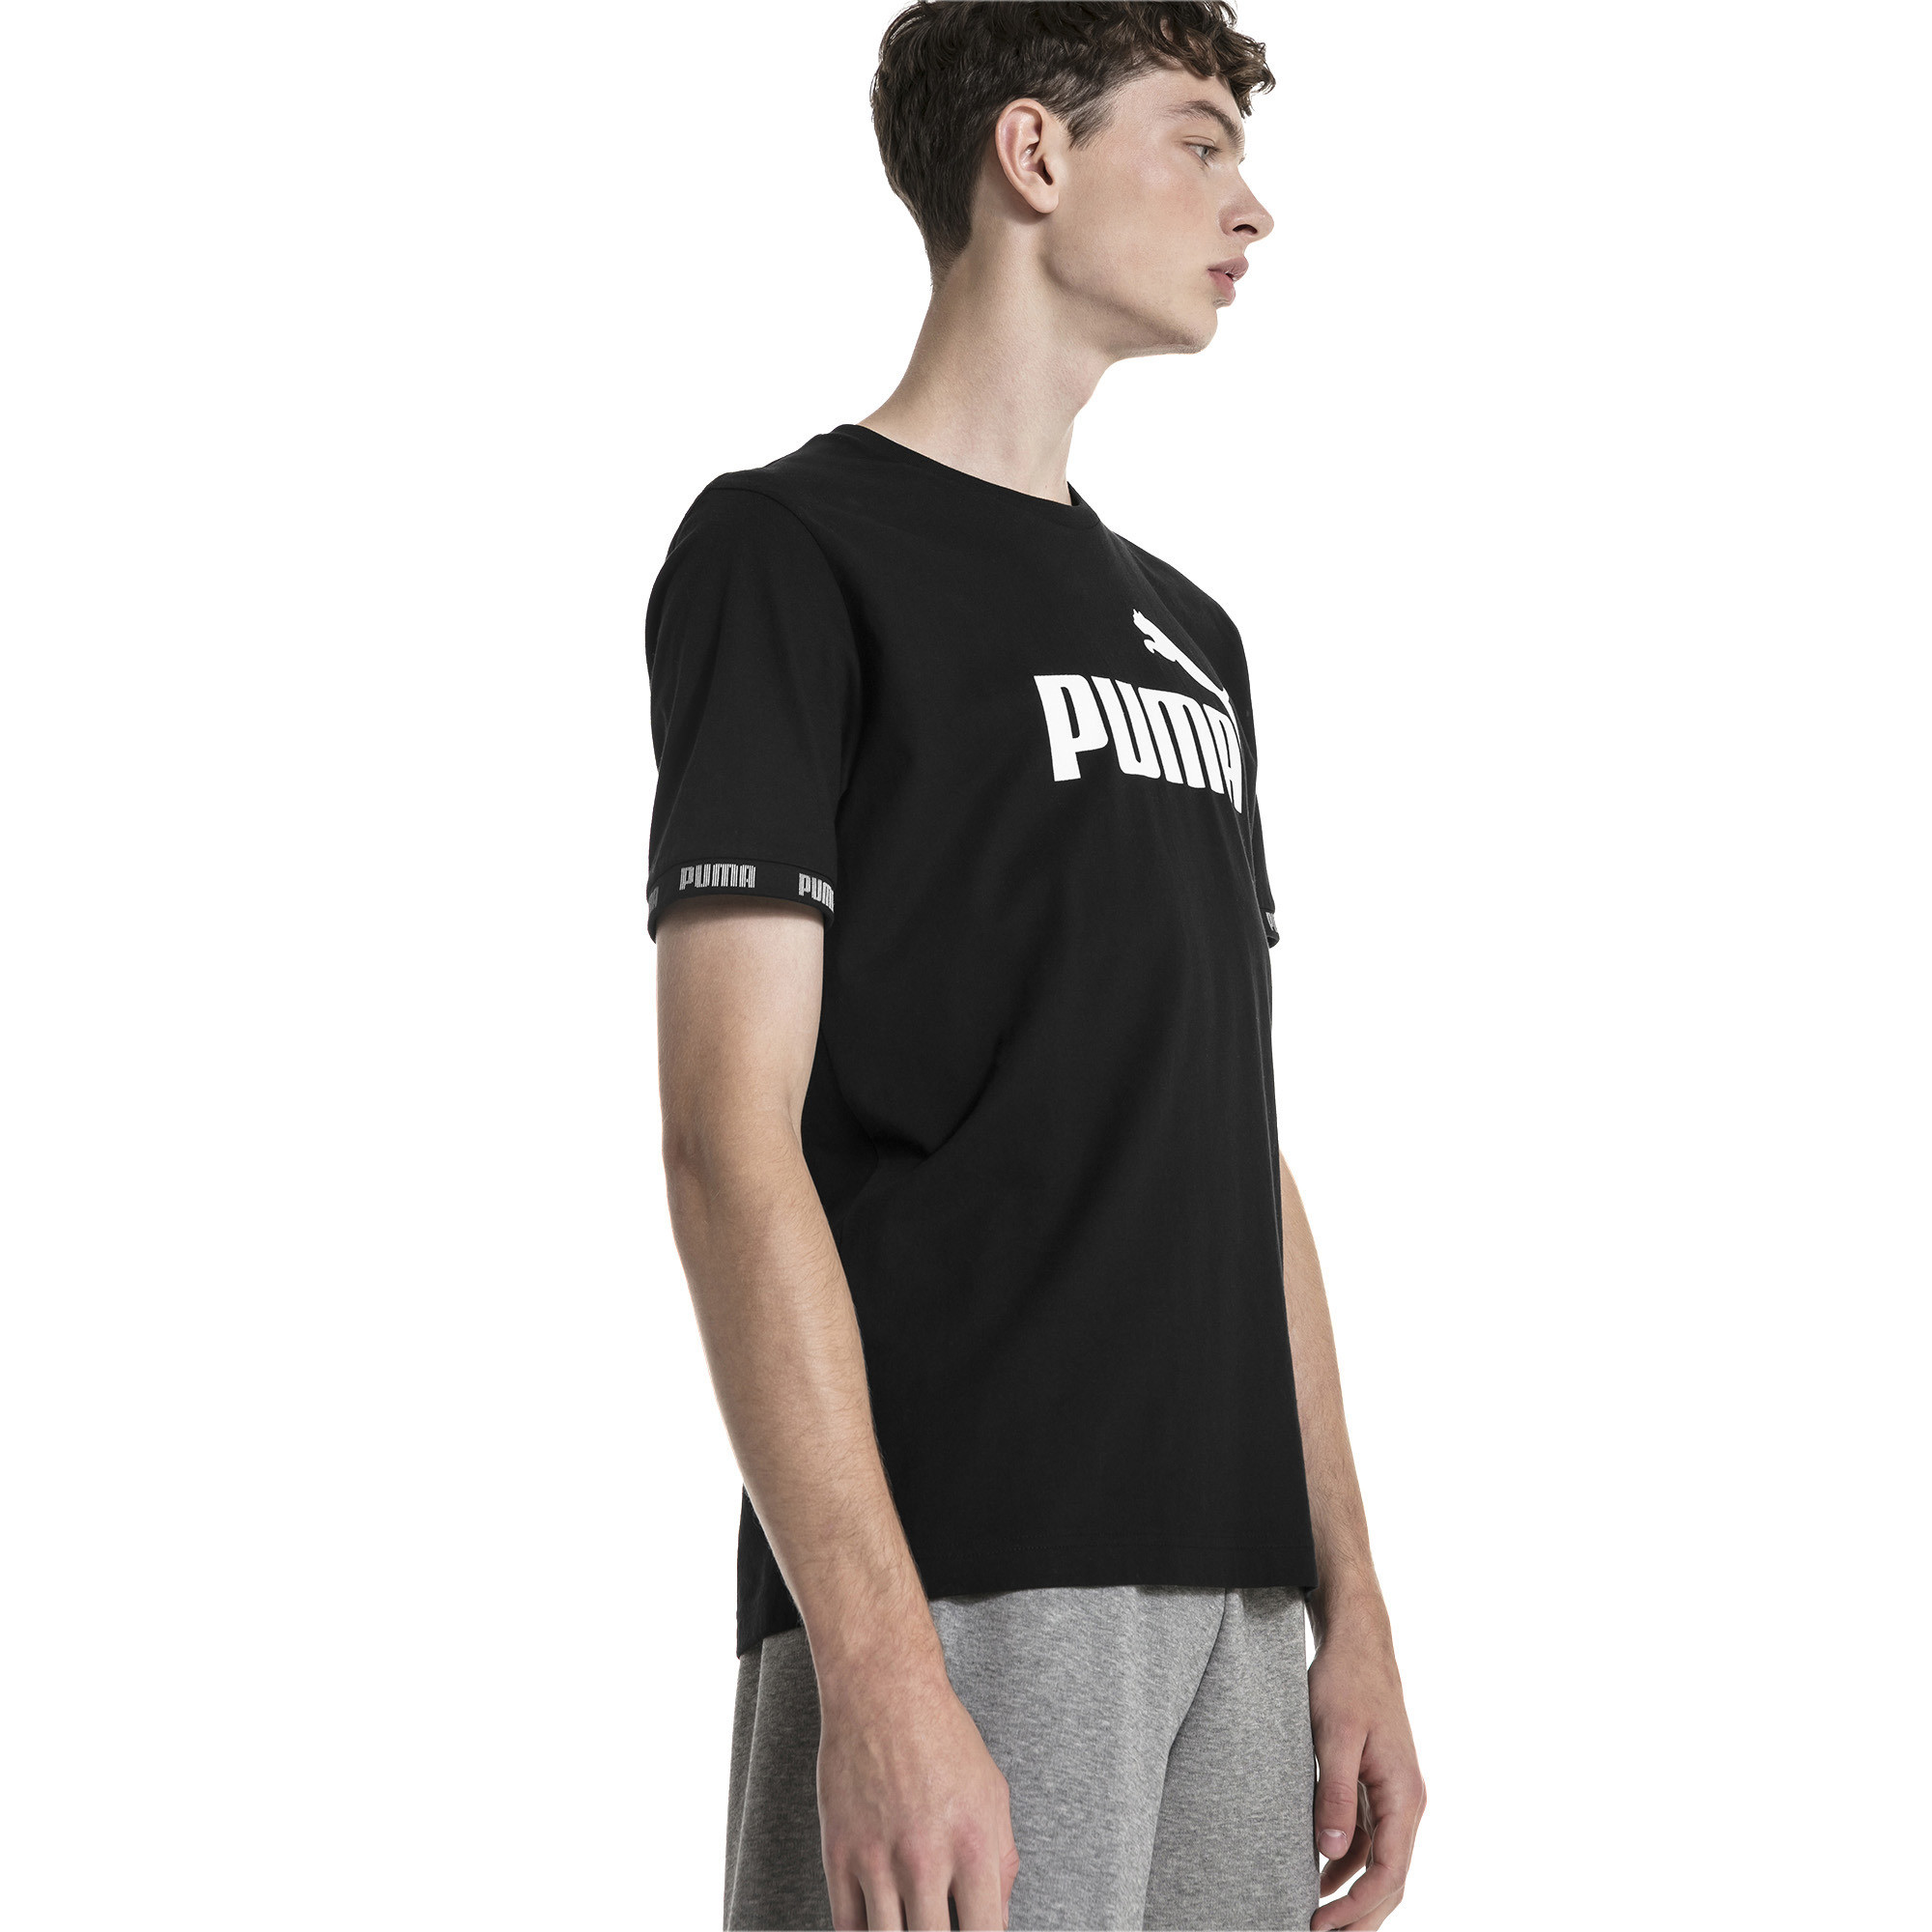 37c8867daee Amplified Men's Tee | 10 - Black | Puma